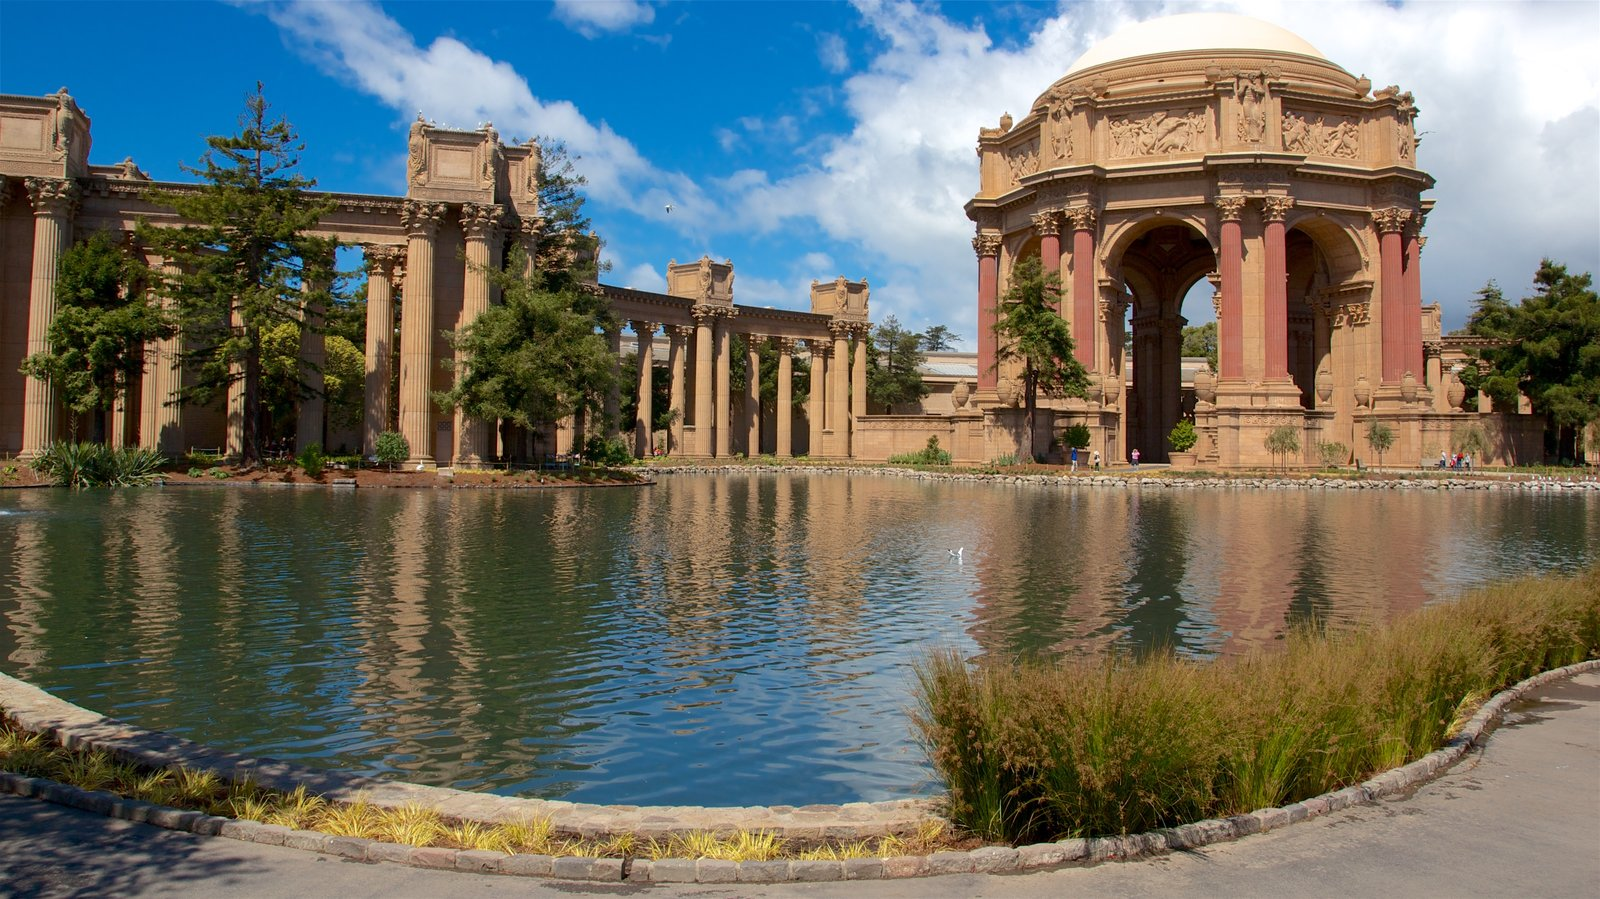 Palace of Fine Arts showing a pond and heritage architecture